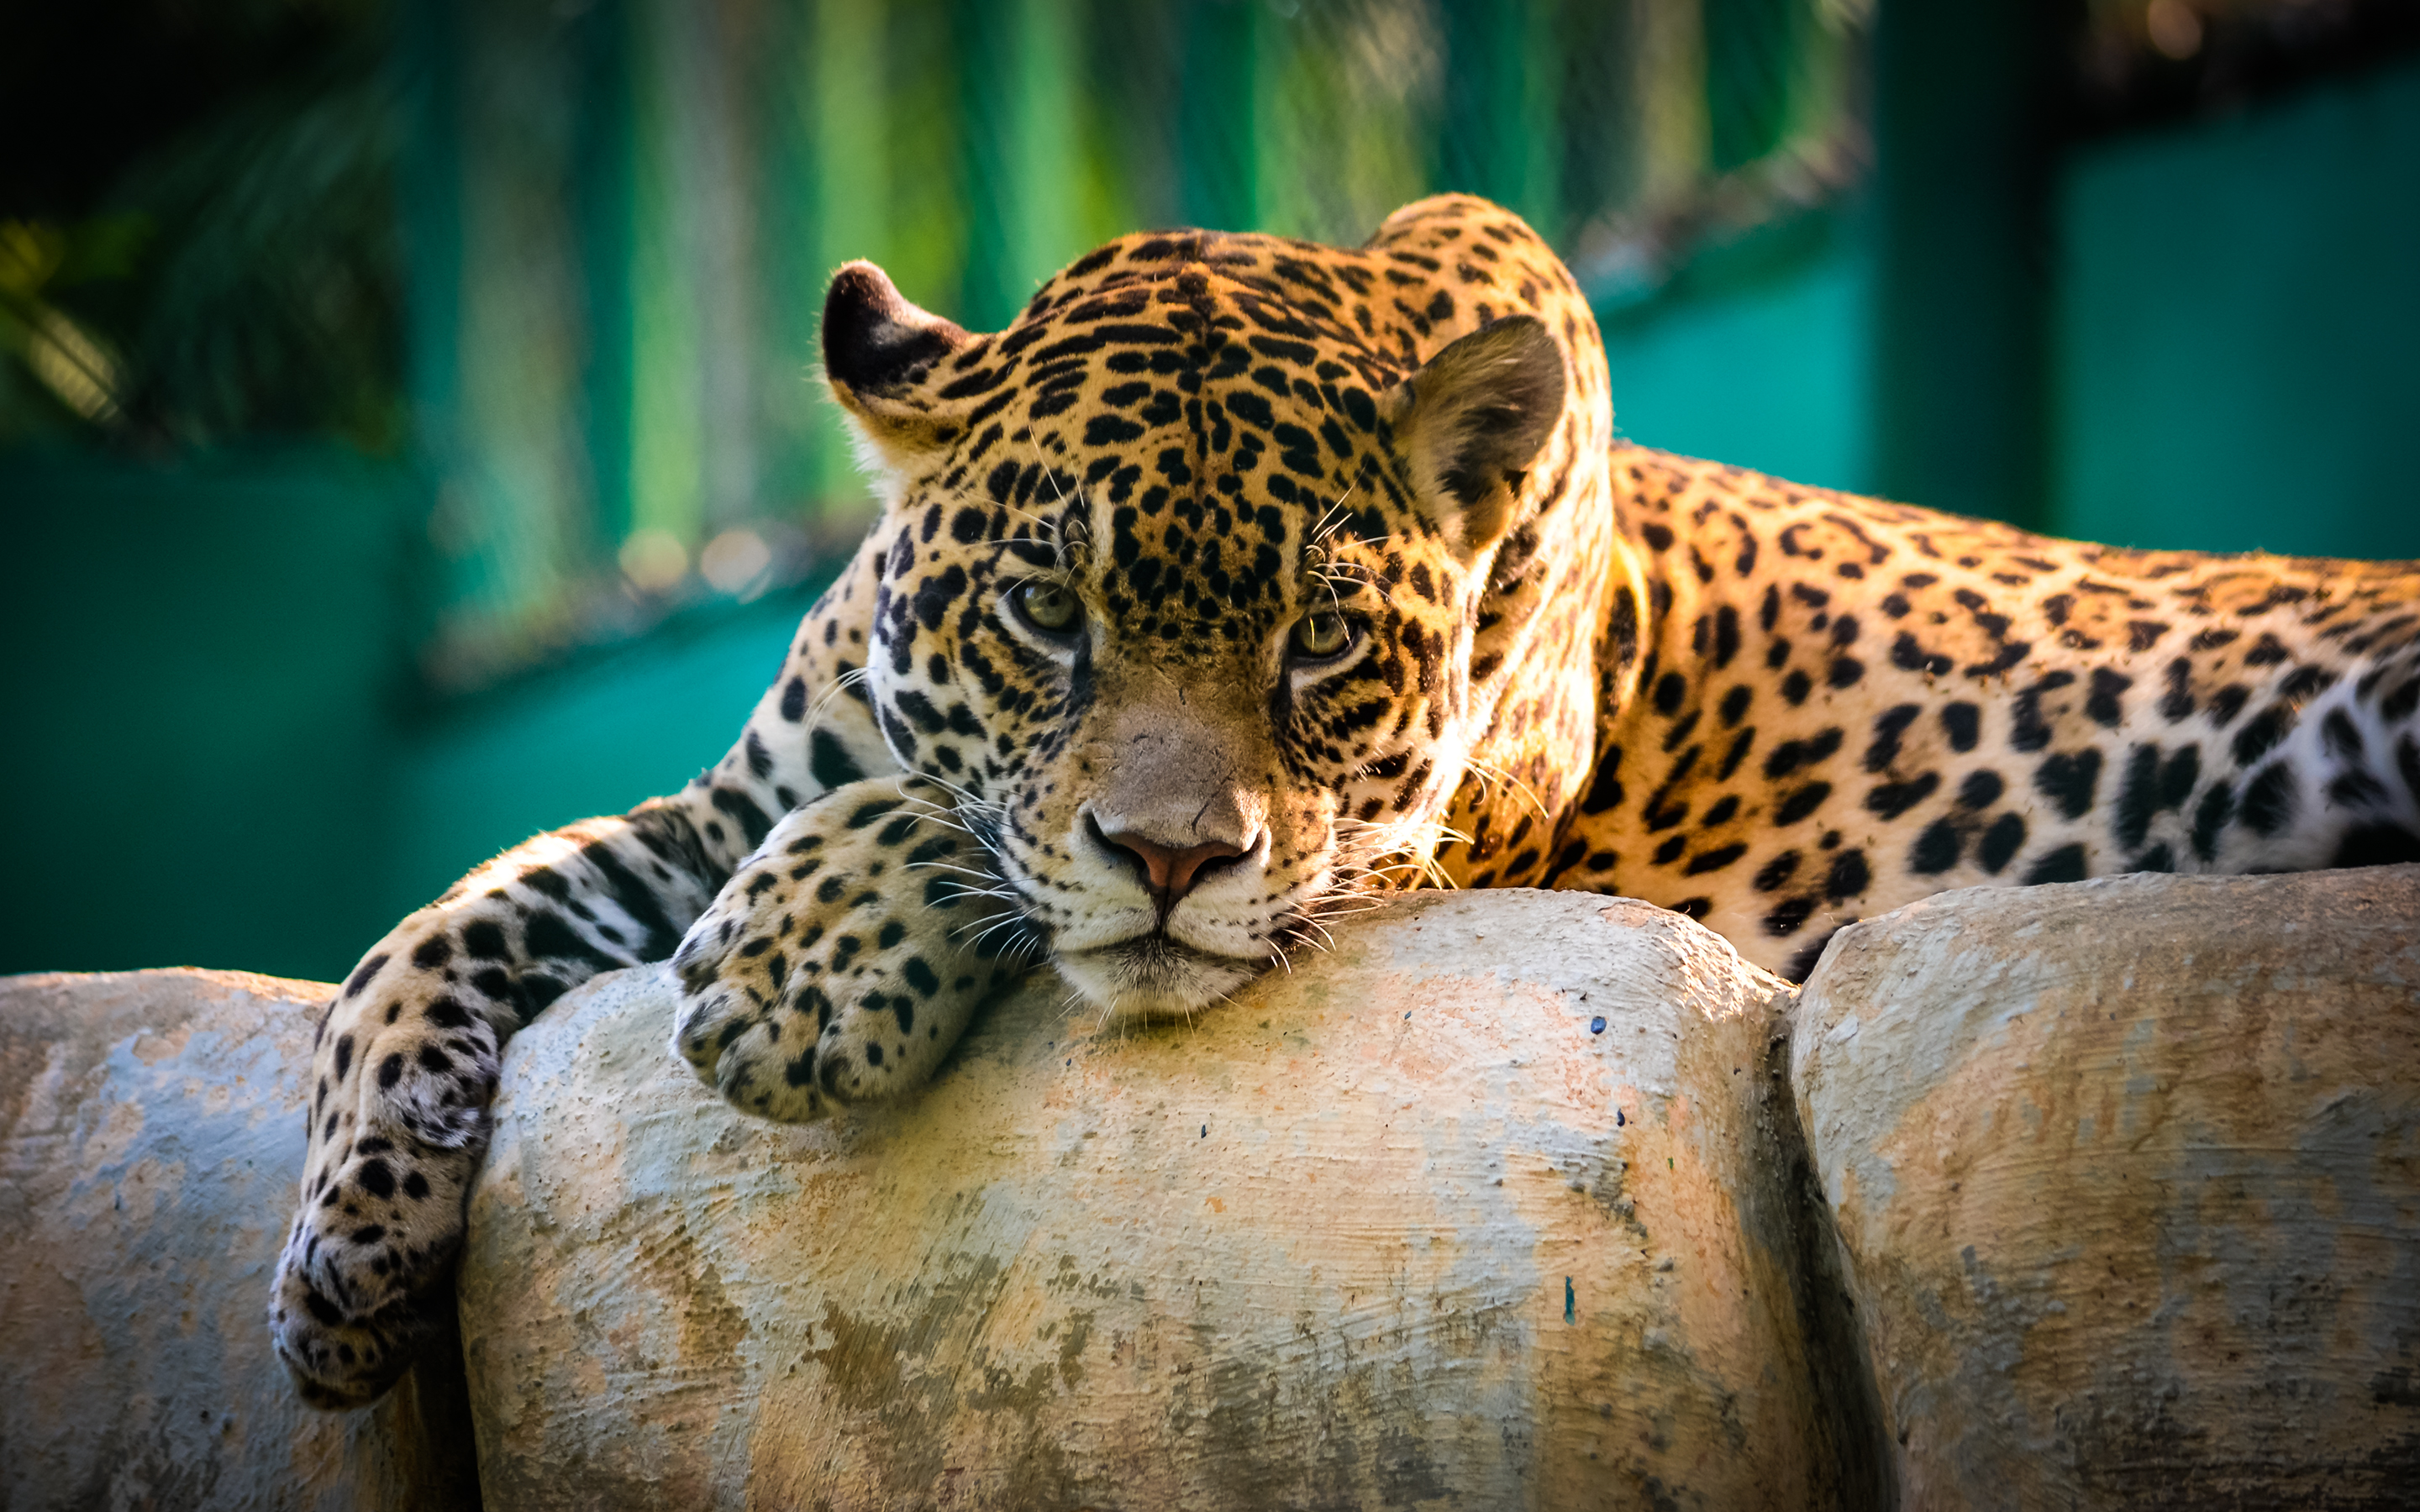 HD Wallpapers Jaguar Mexico